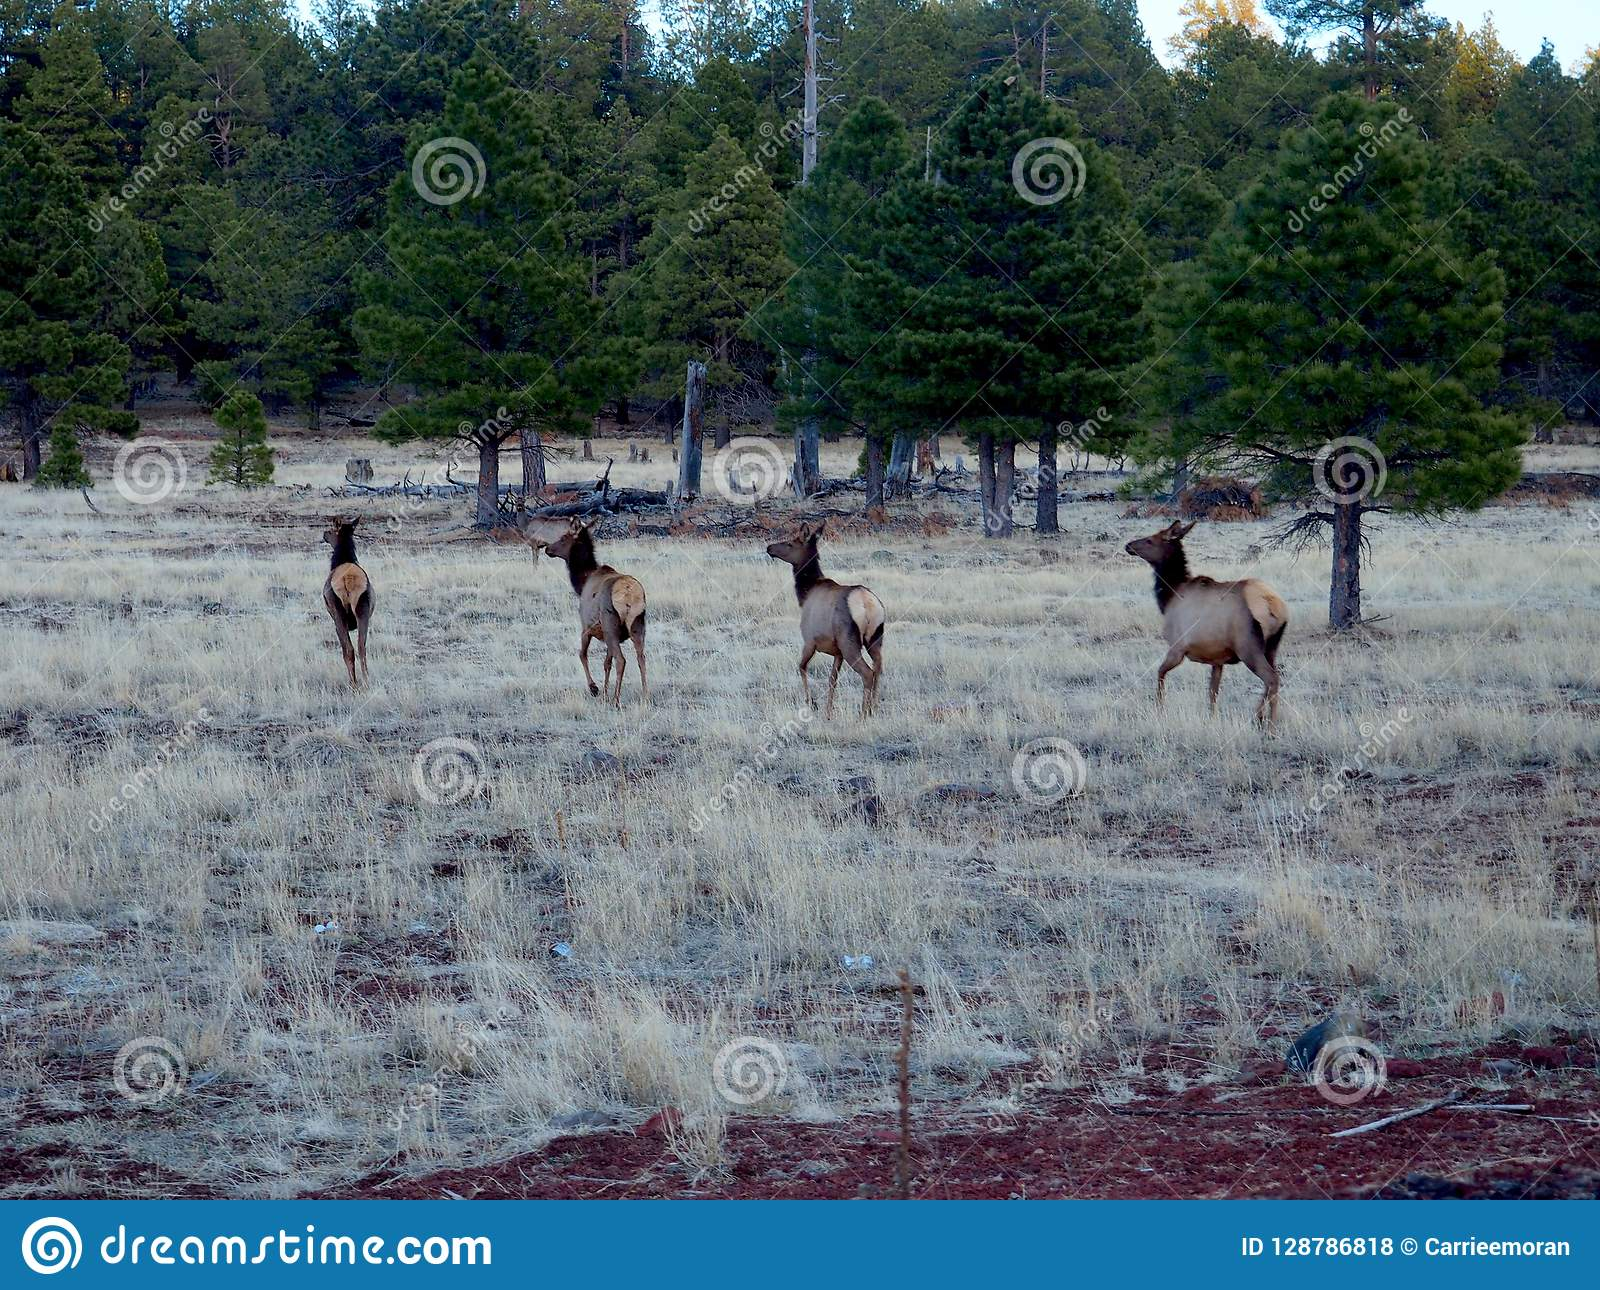 Four Wild Deer Running in a Meadow in Arizona